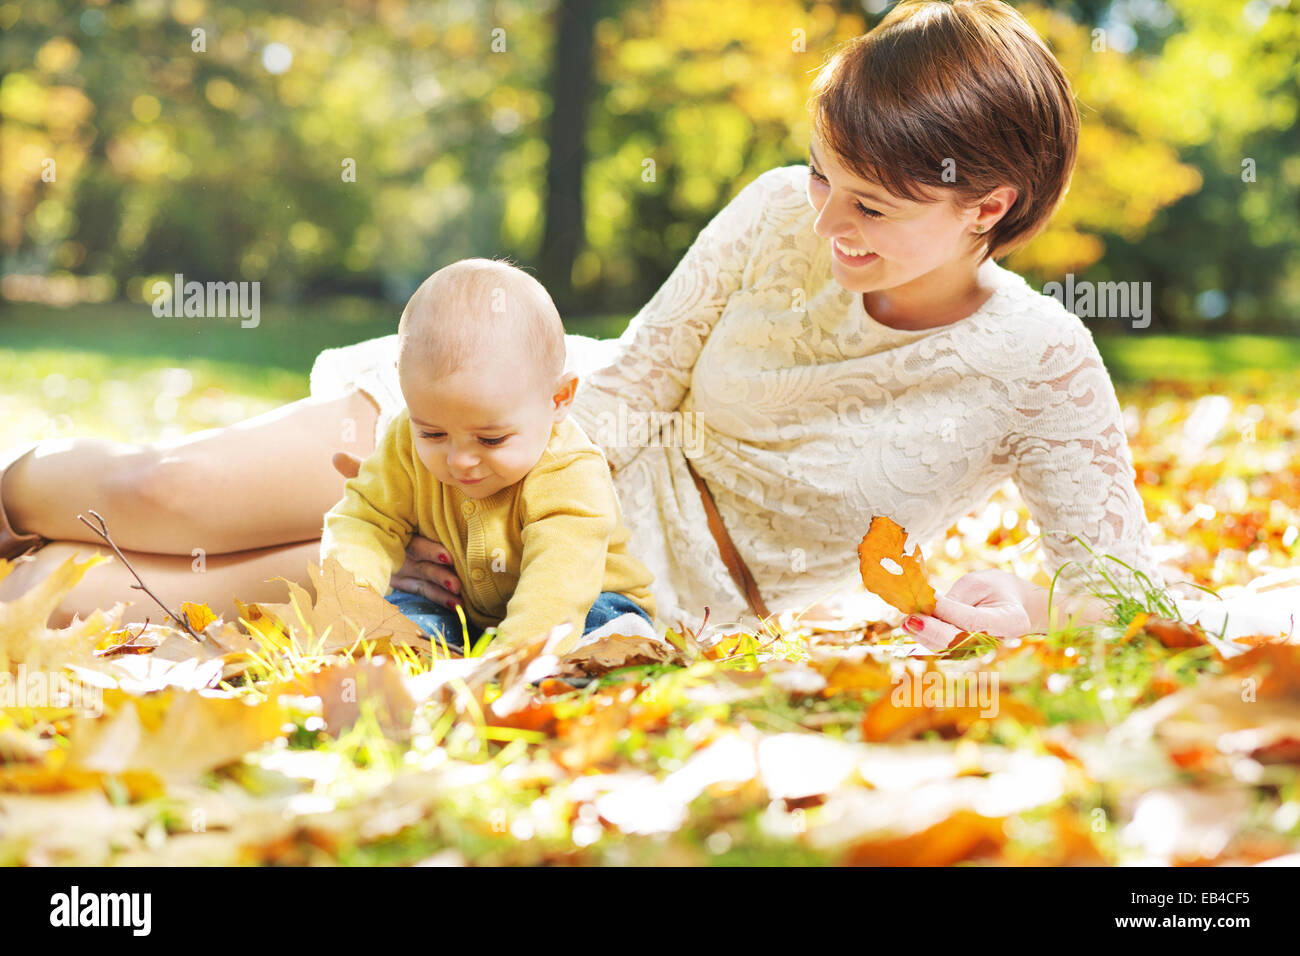 Glad mom looking after her baby - Stock Image